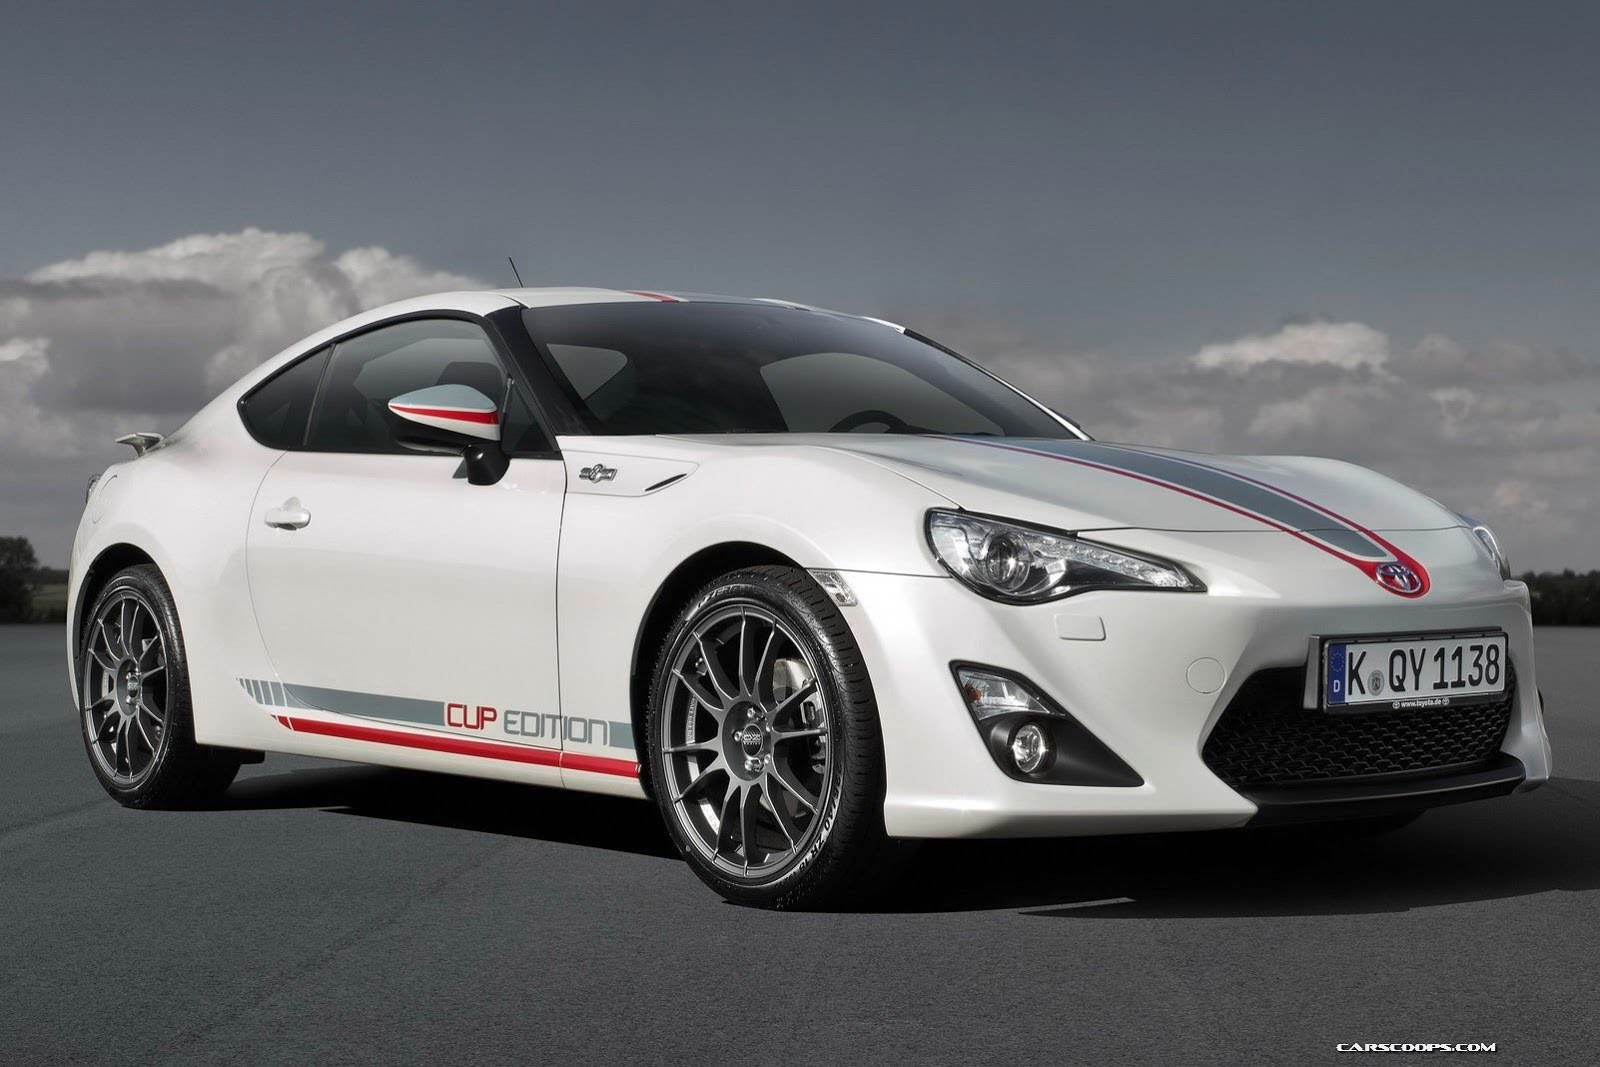 2014 Toyota Gt 86 Pictures Information And Specs Chevrolet Cruze Fuse Box Wallpaper 14